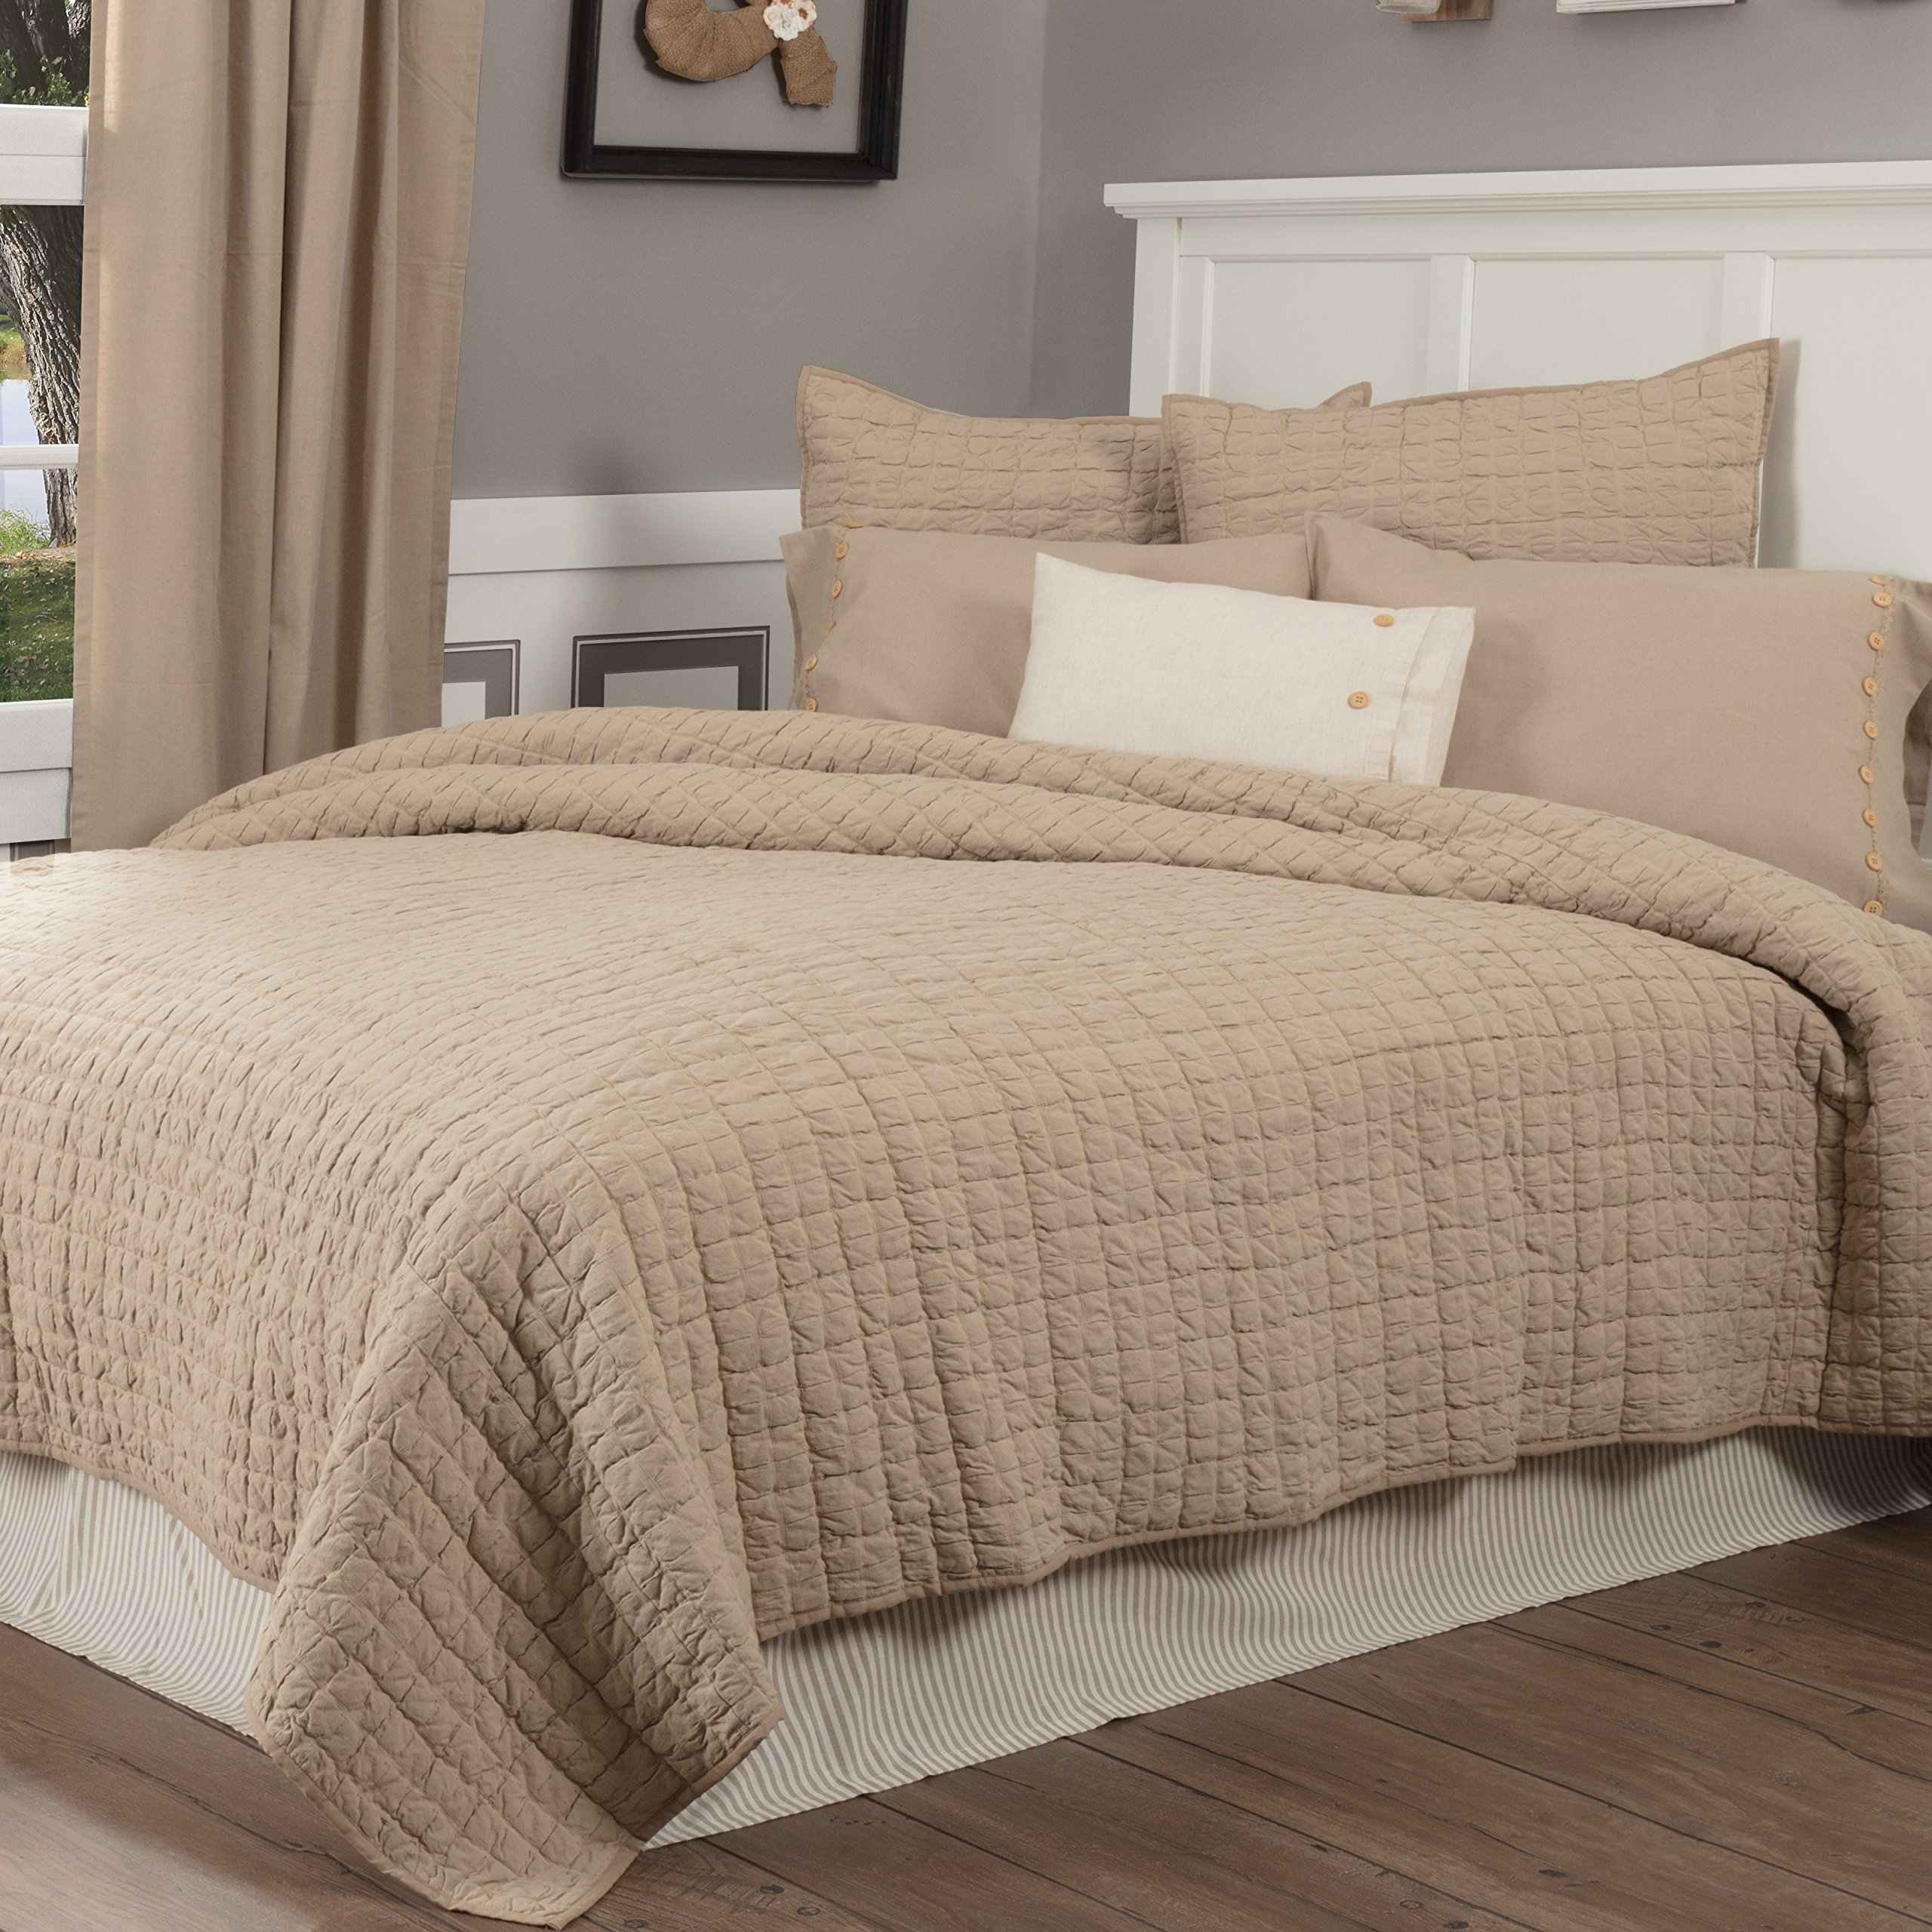 Piper Classics Clara's Cottage Taupe King Quilt, 95x105, Farmhouse Style Beige Bedspread